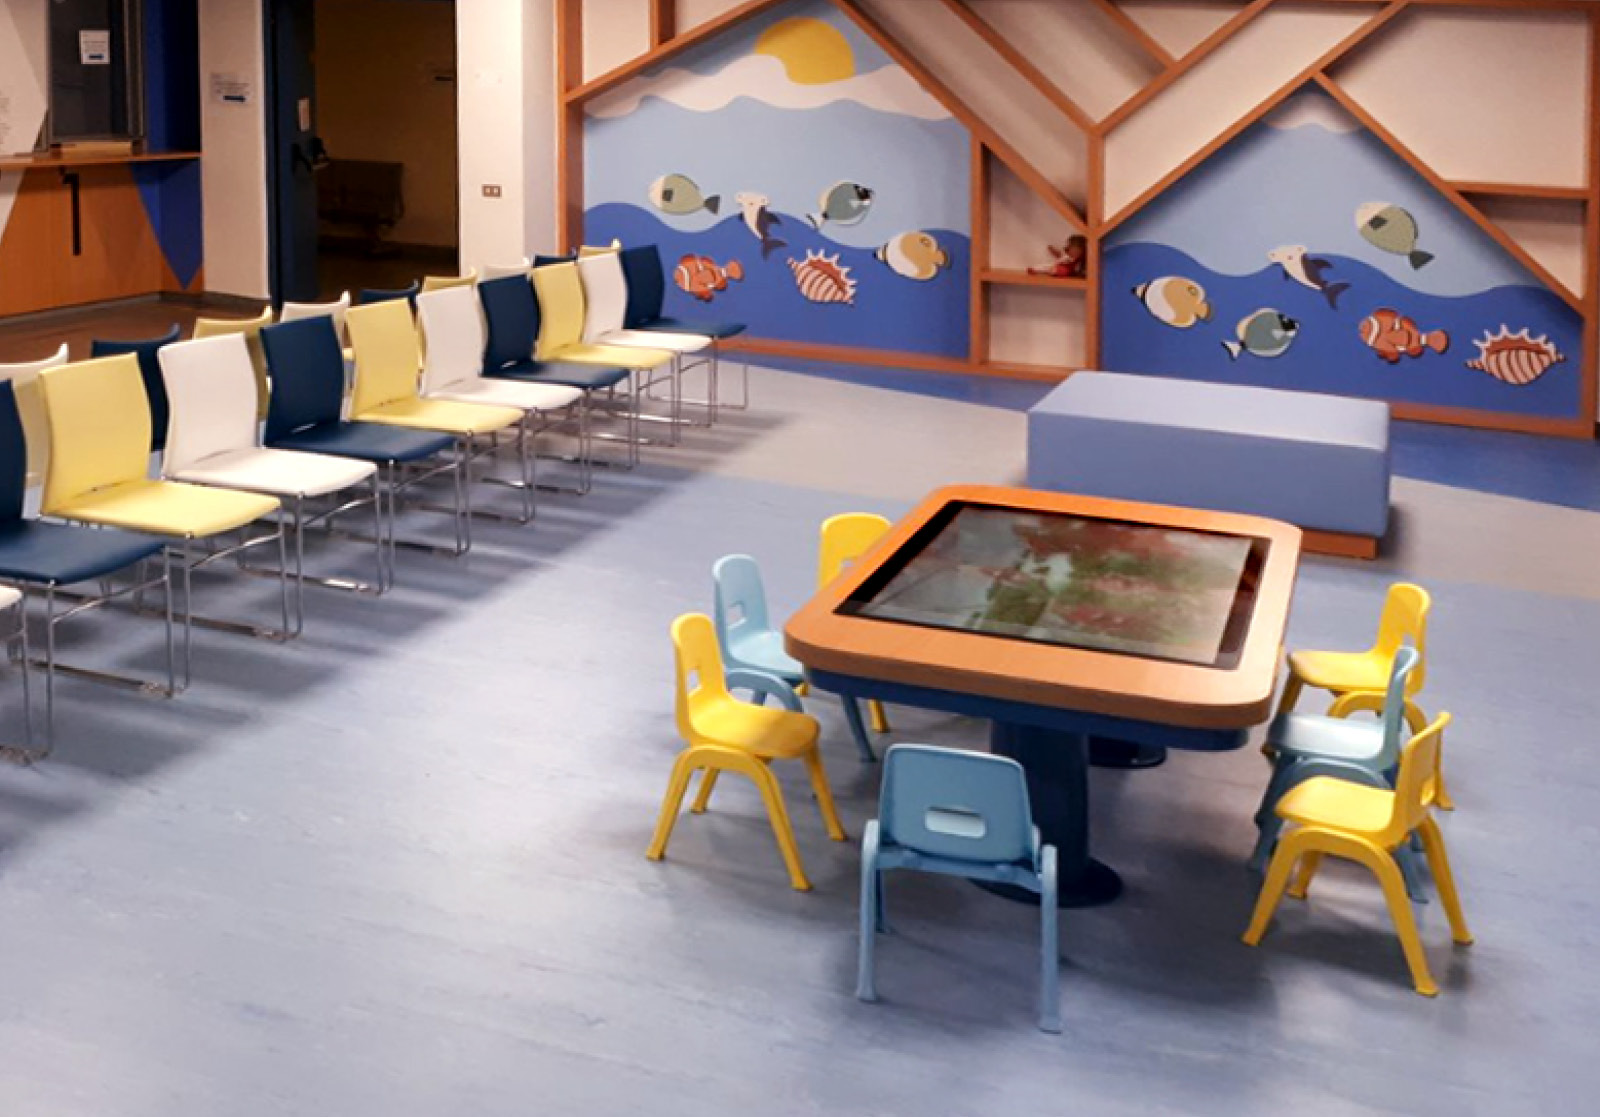 Touchwindow - A child-friendly environment